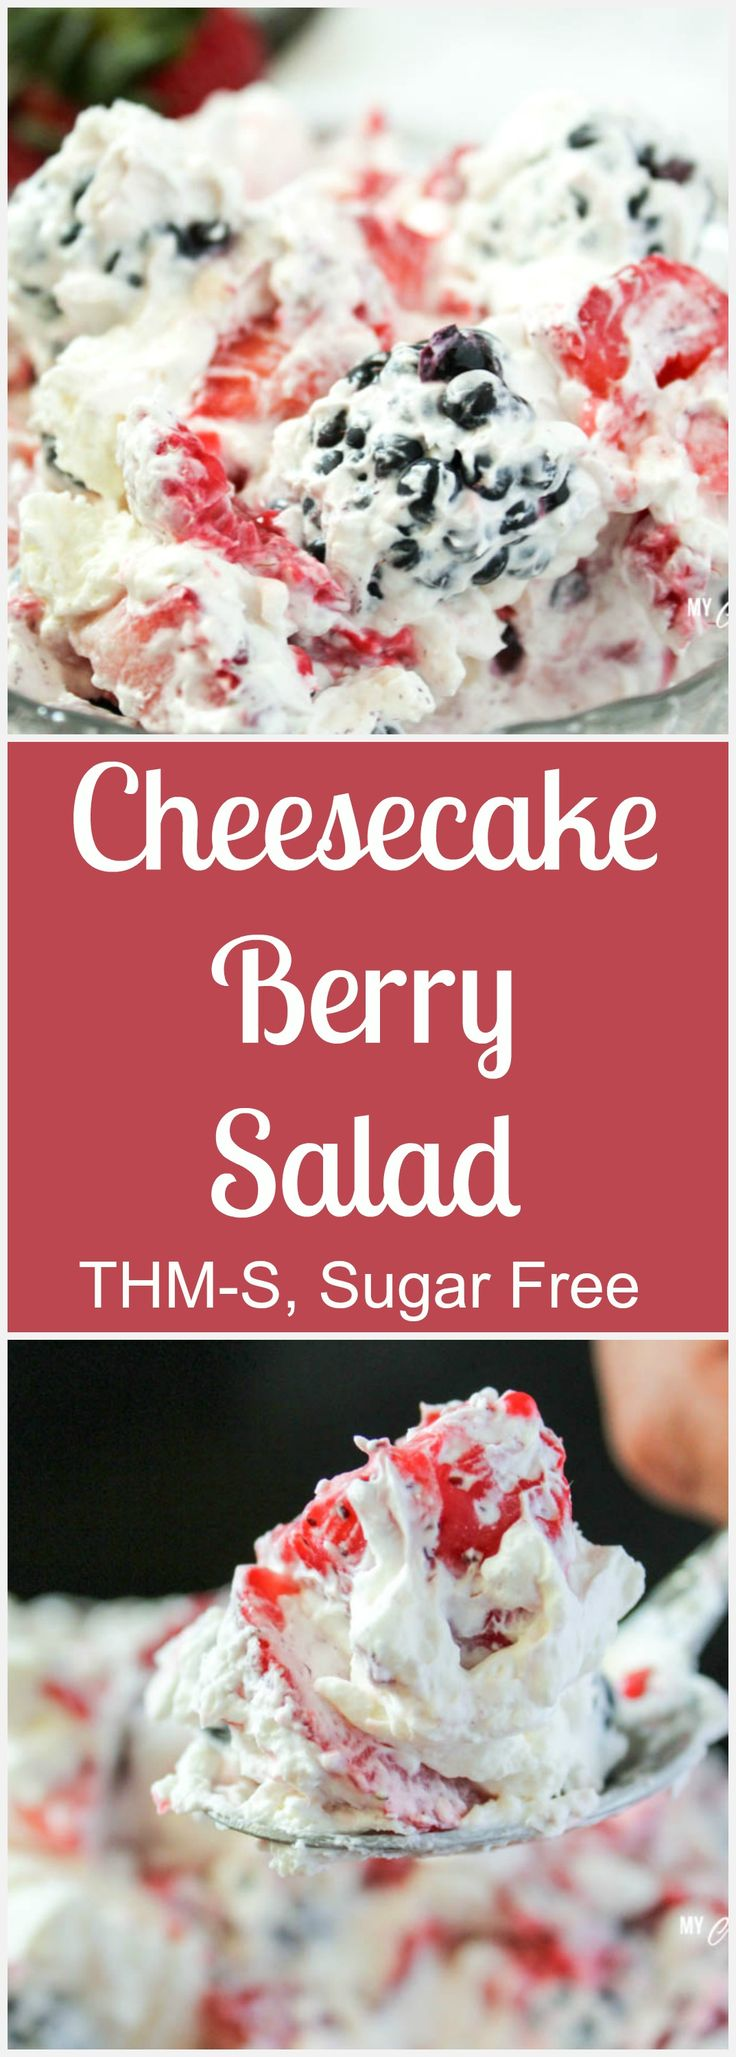 Cheesecake Berry Salad (THM-S, Sugar Free)